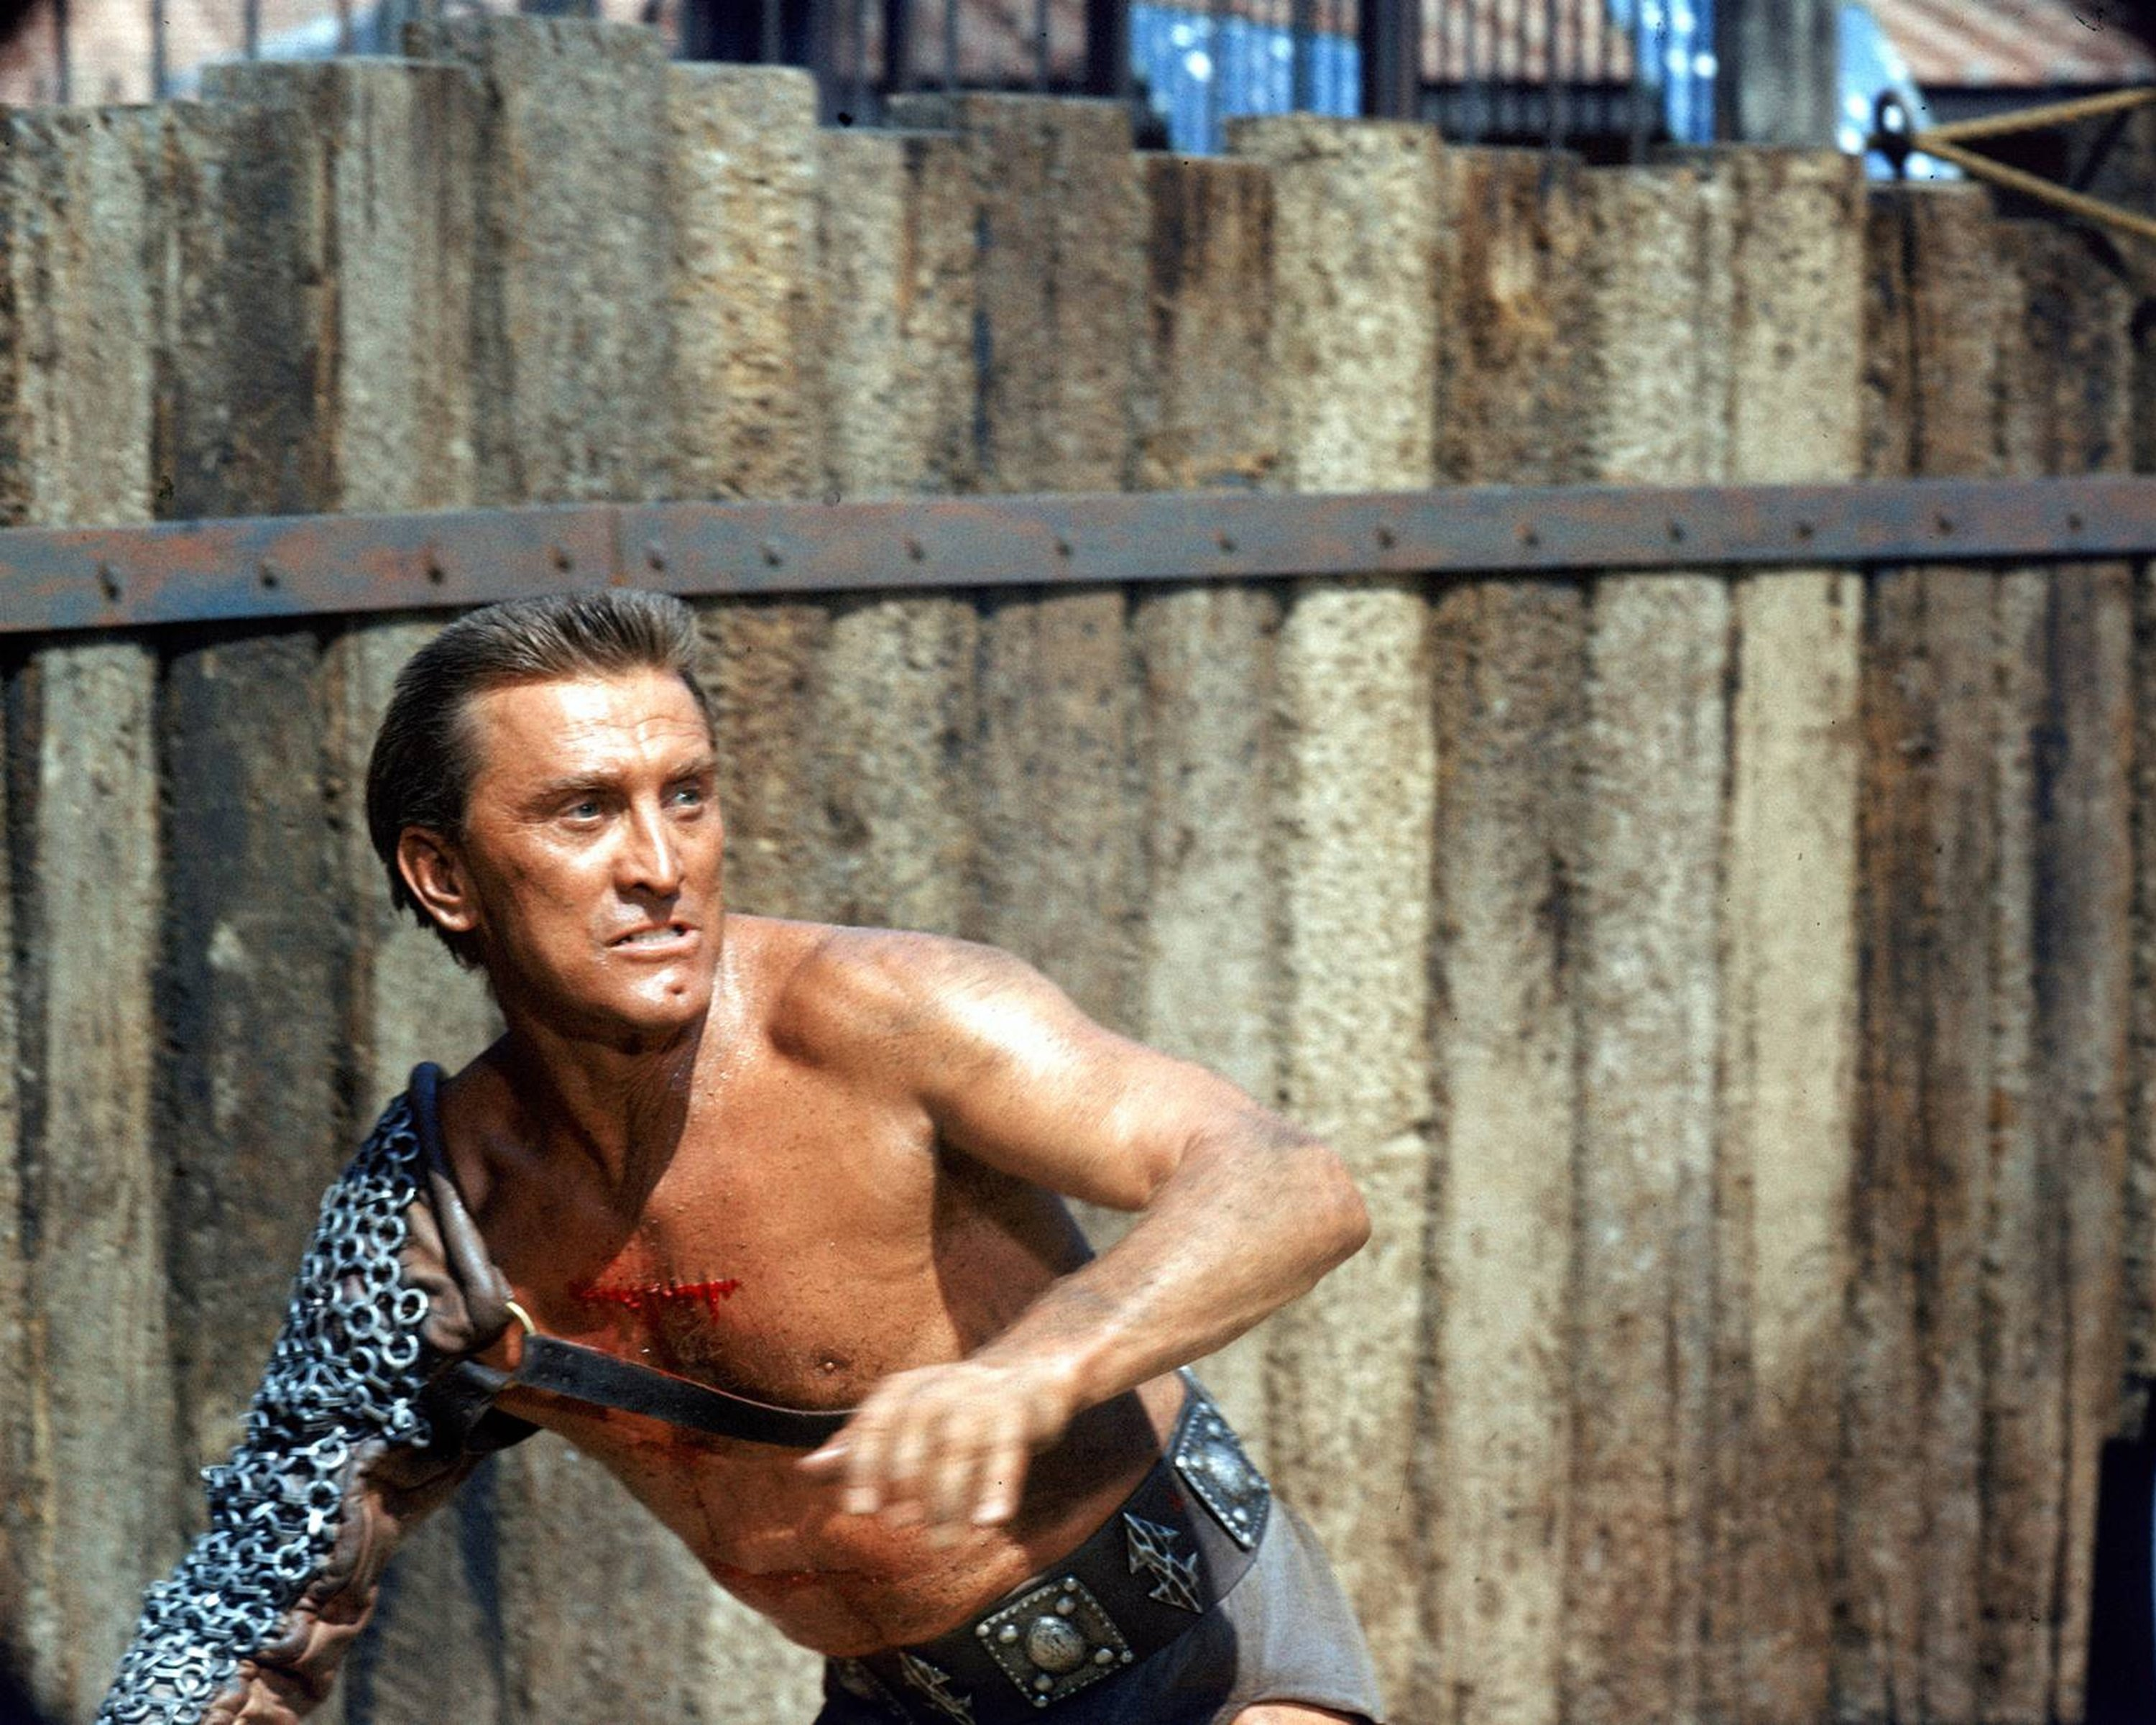 Kirk Douglas in a publicity still issued for the film, 'Spartacus', 1960. | Source: Getty Images.